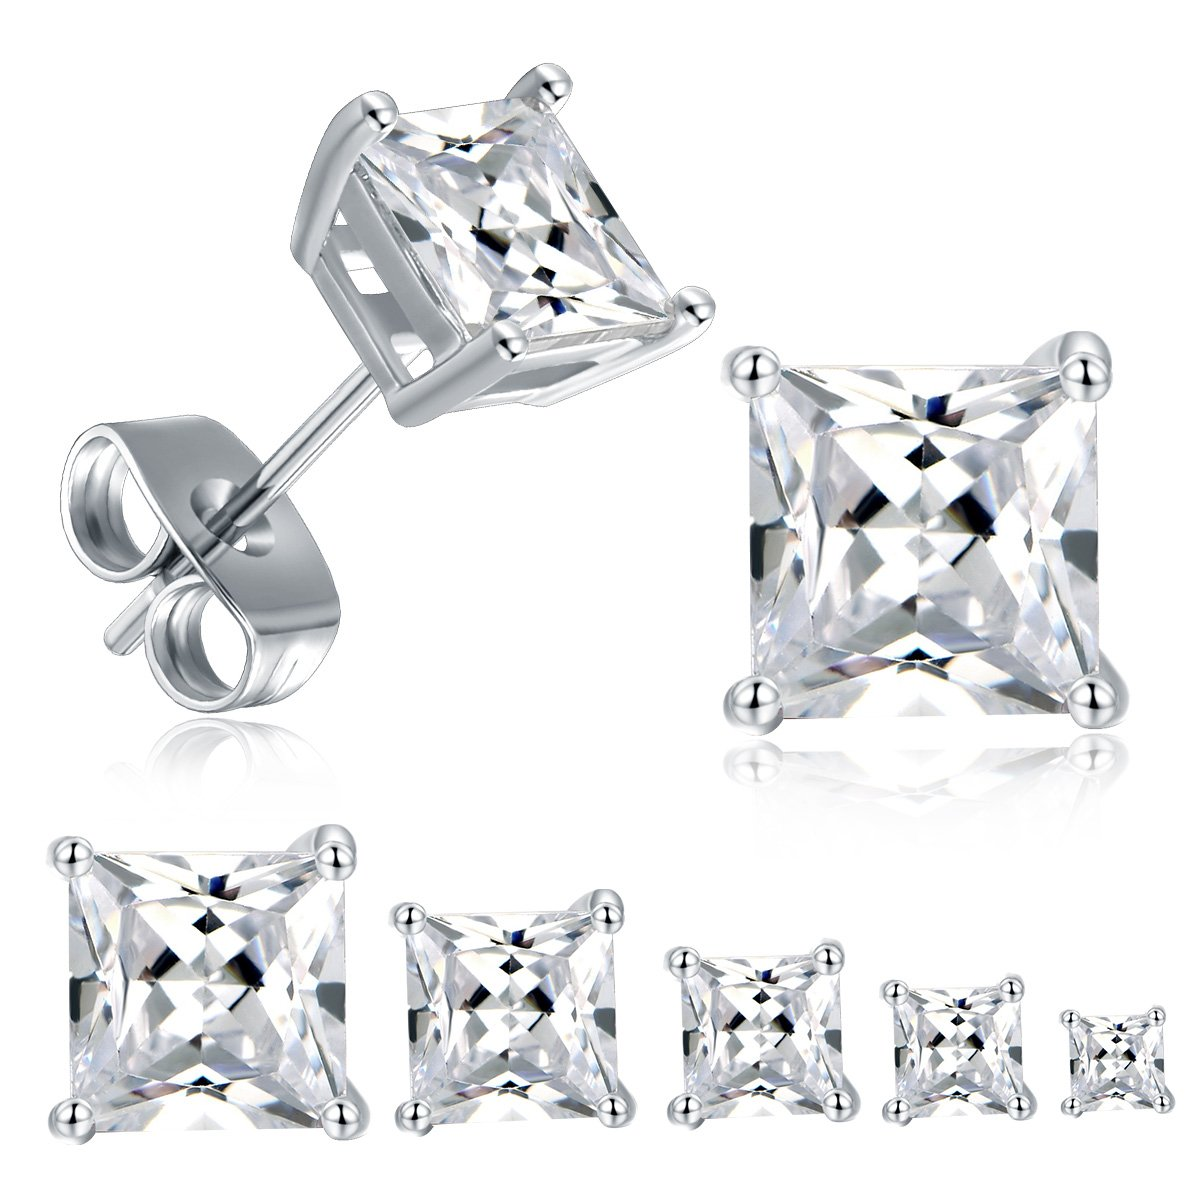 18K White Gold Plated Princess Cut Cubic Zirconia Stud Earrings Pack of 5 GEMSME E-880552